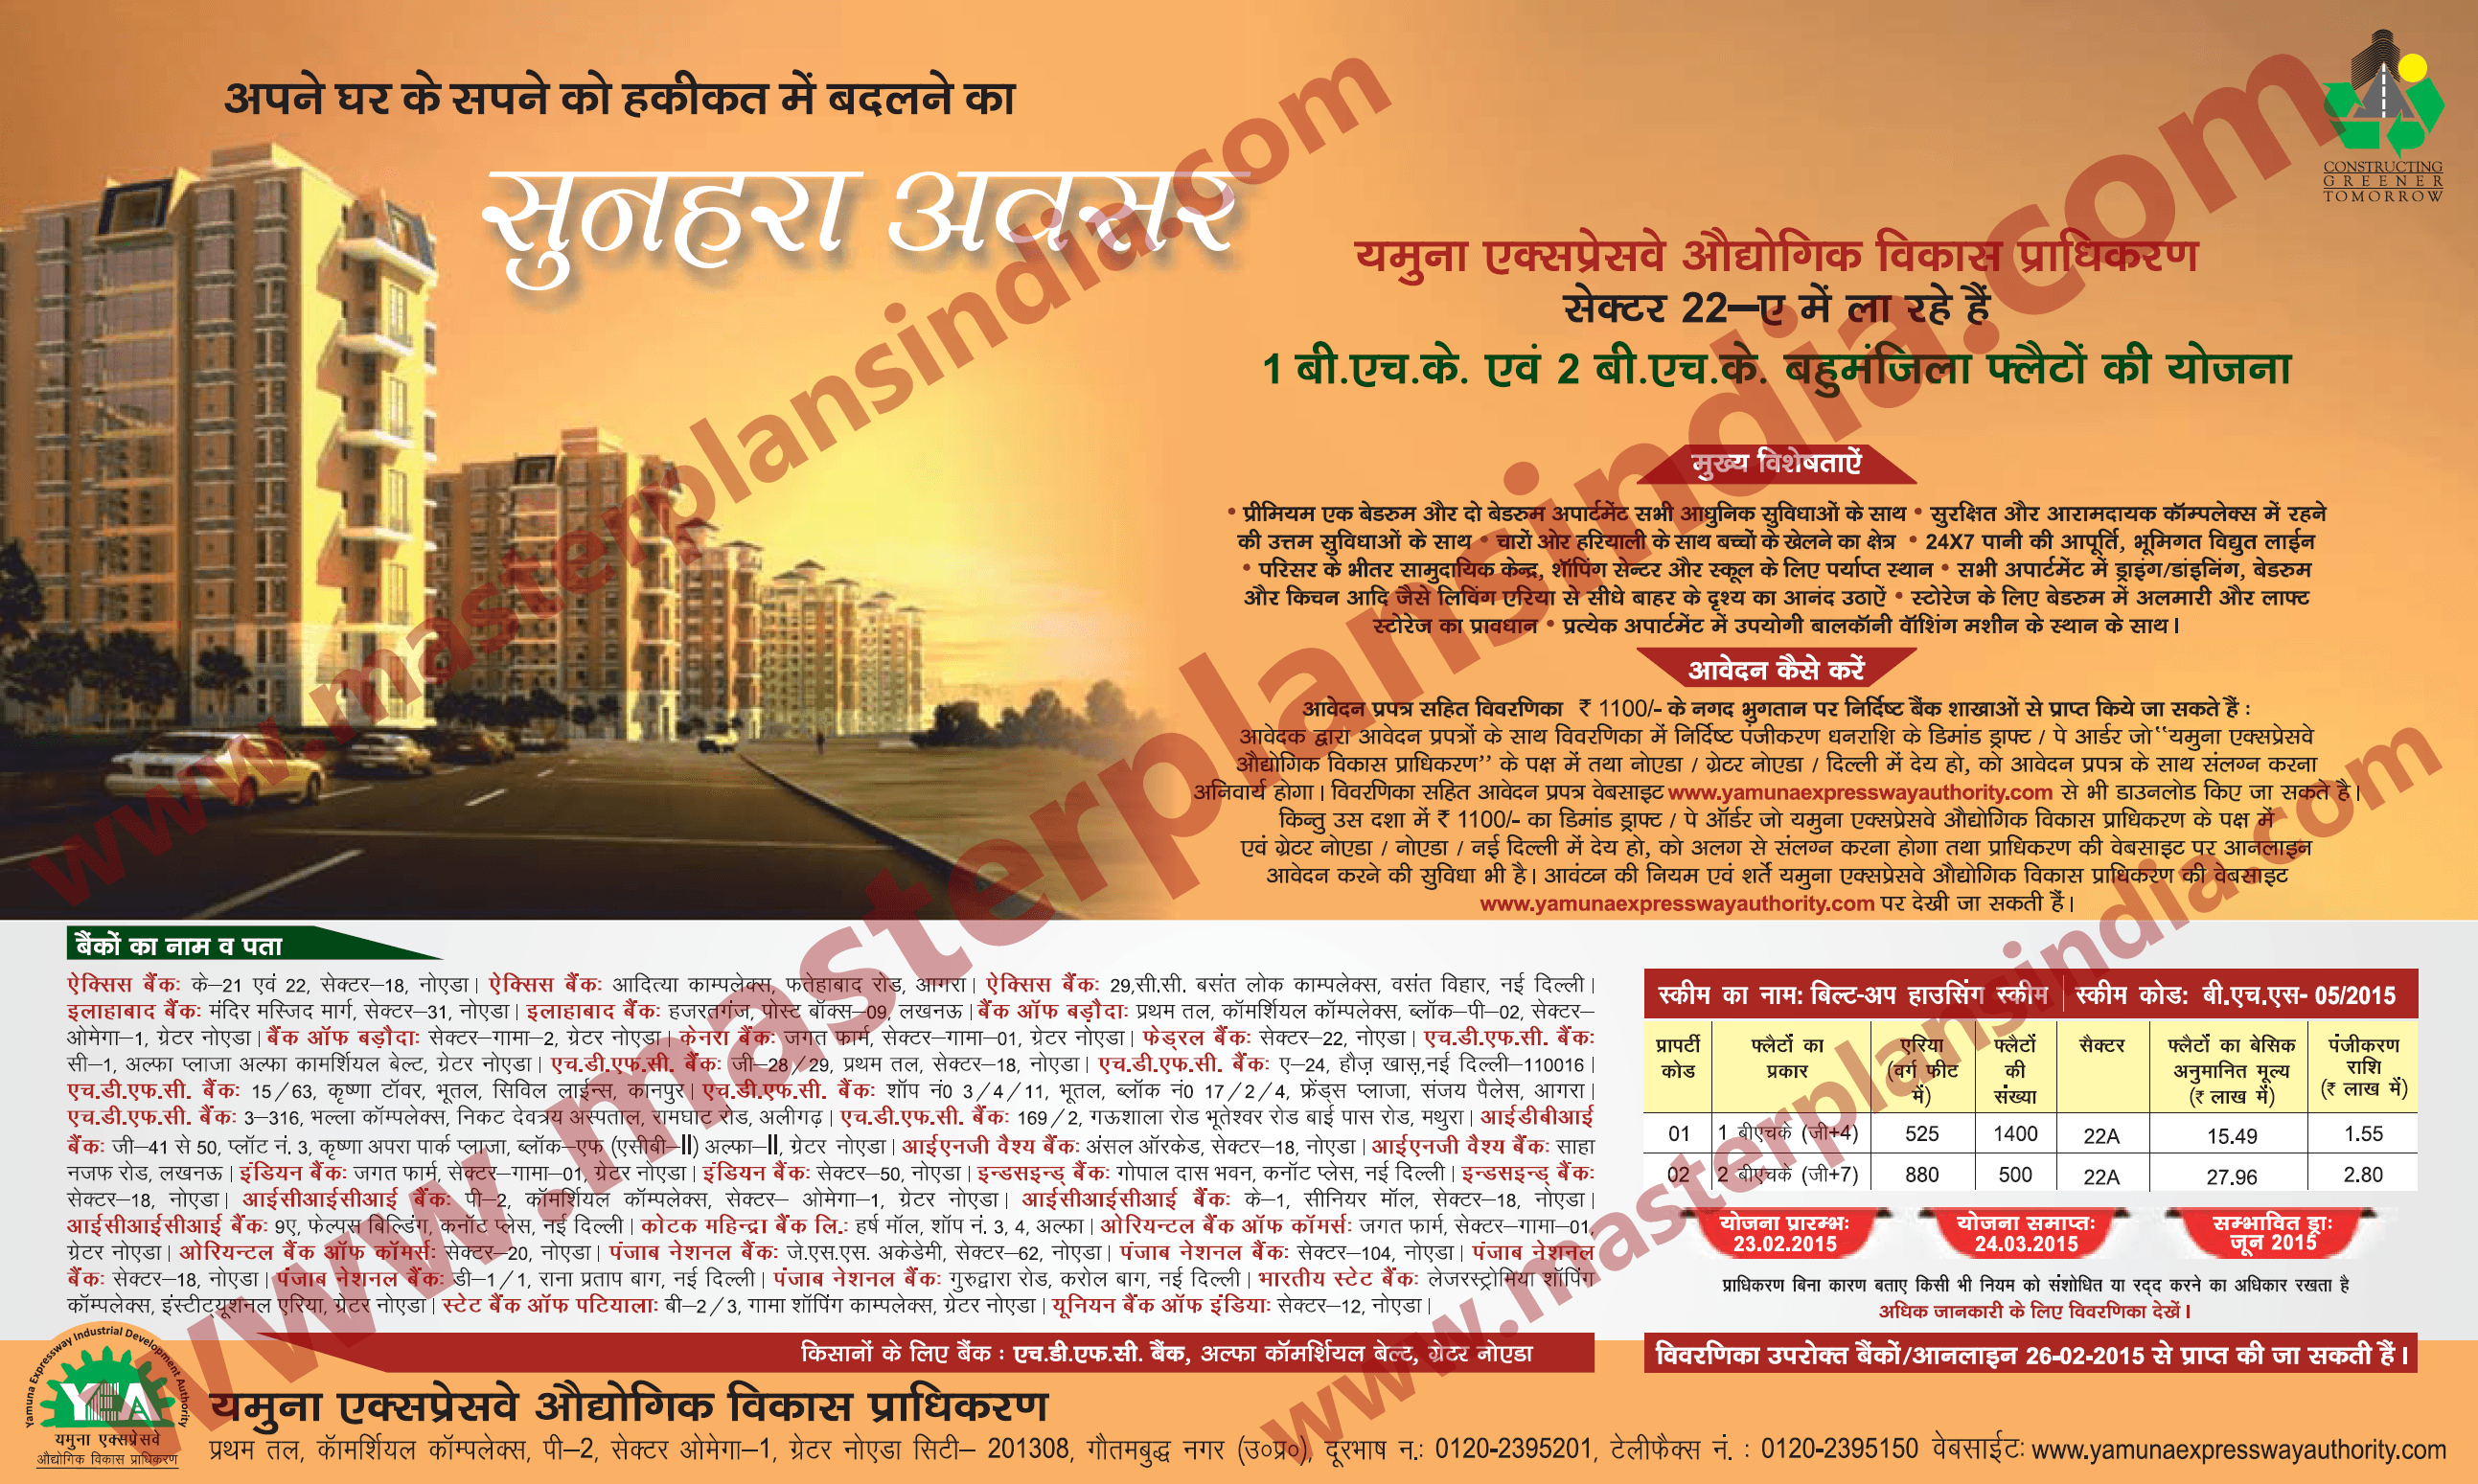 Noida authority online.